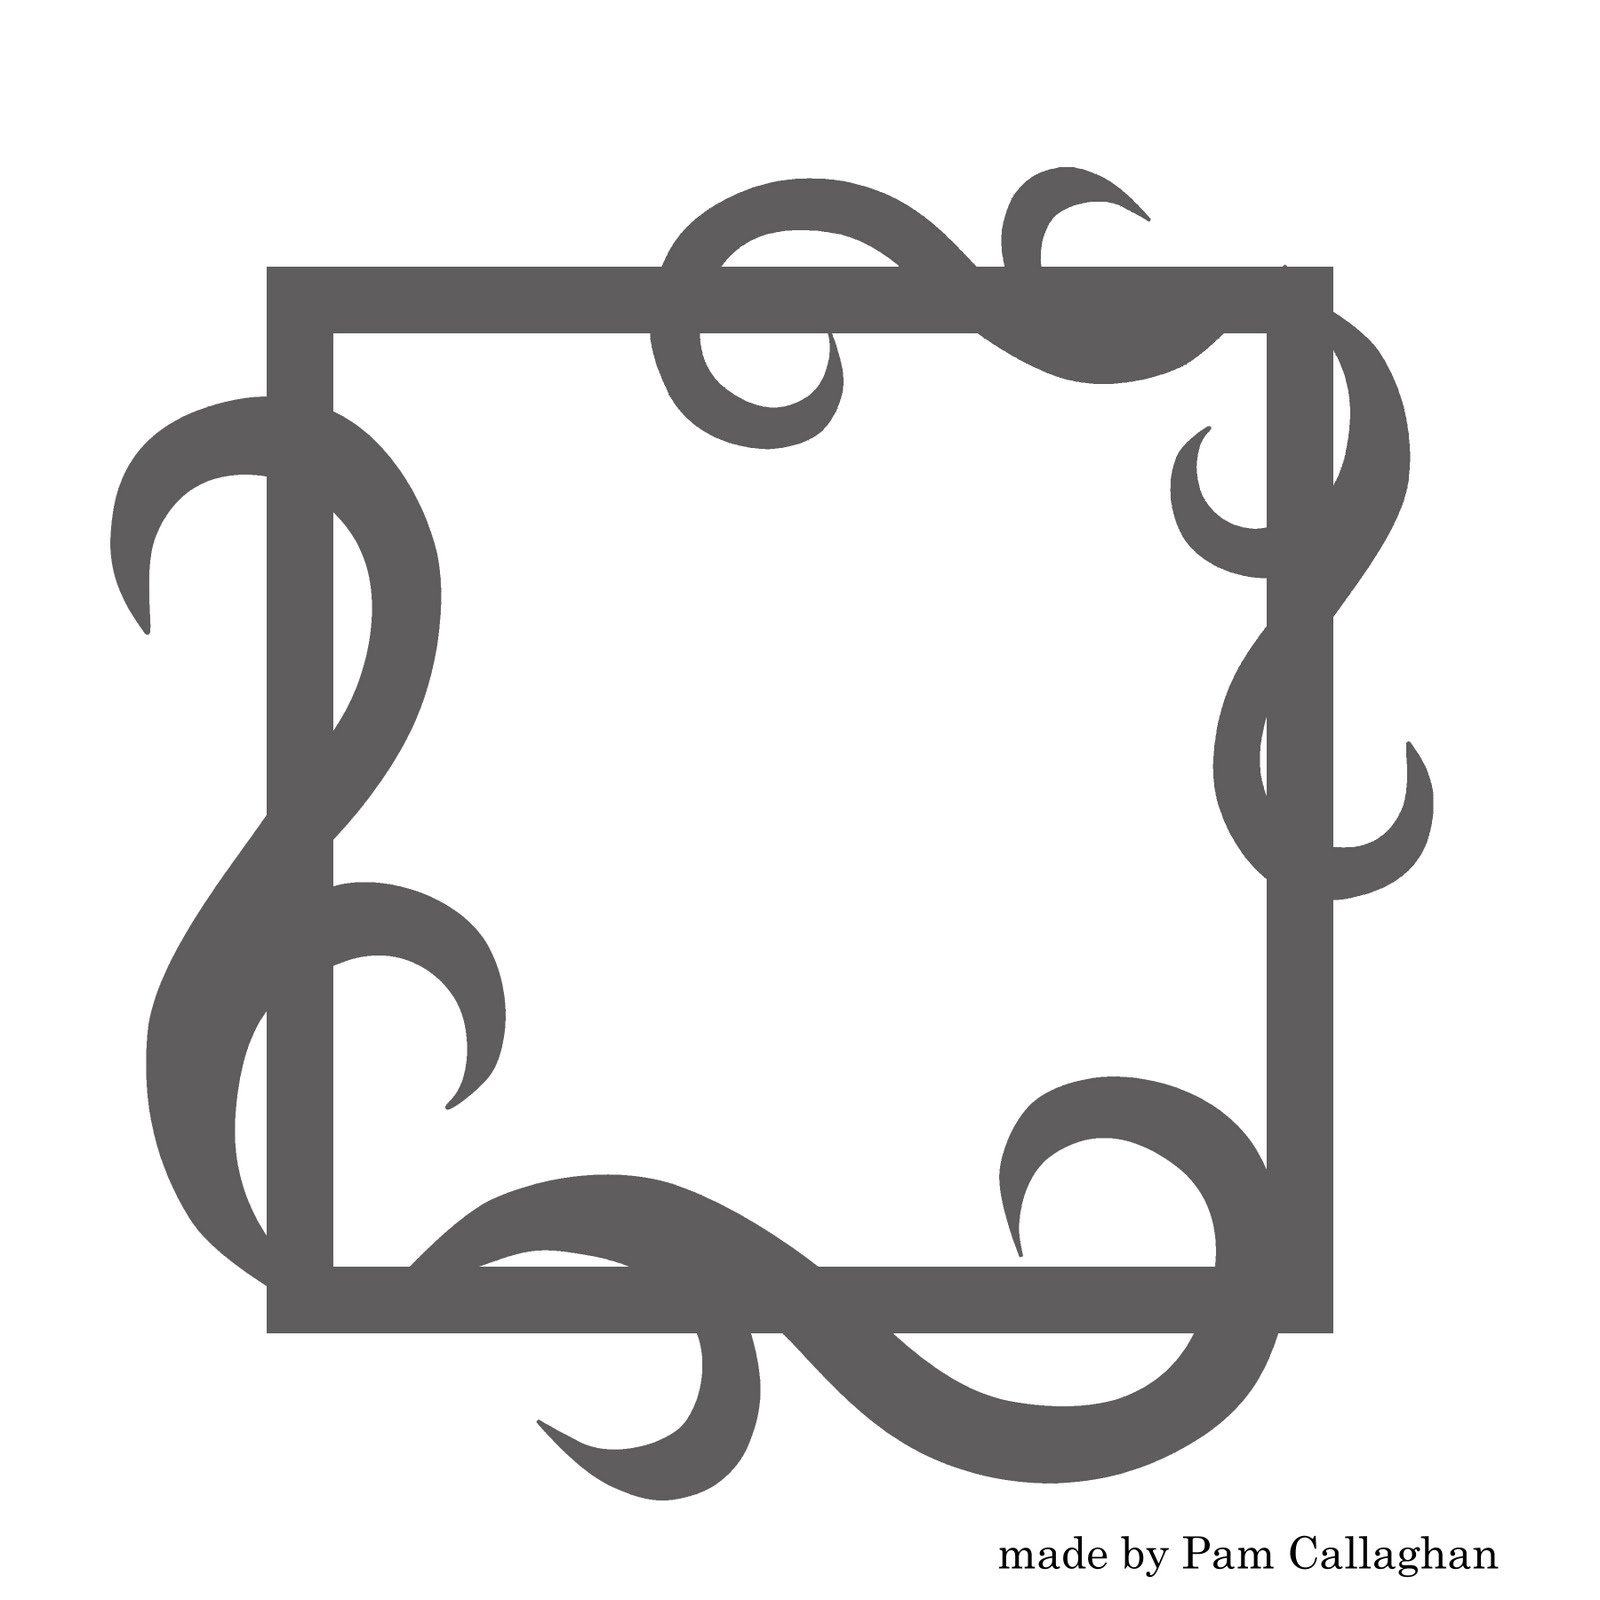 Ten Frame Template http://ideasforscrapbookers.blogspot.com/2010/10/new-decorative-flourish-frame-template.html